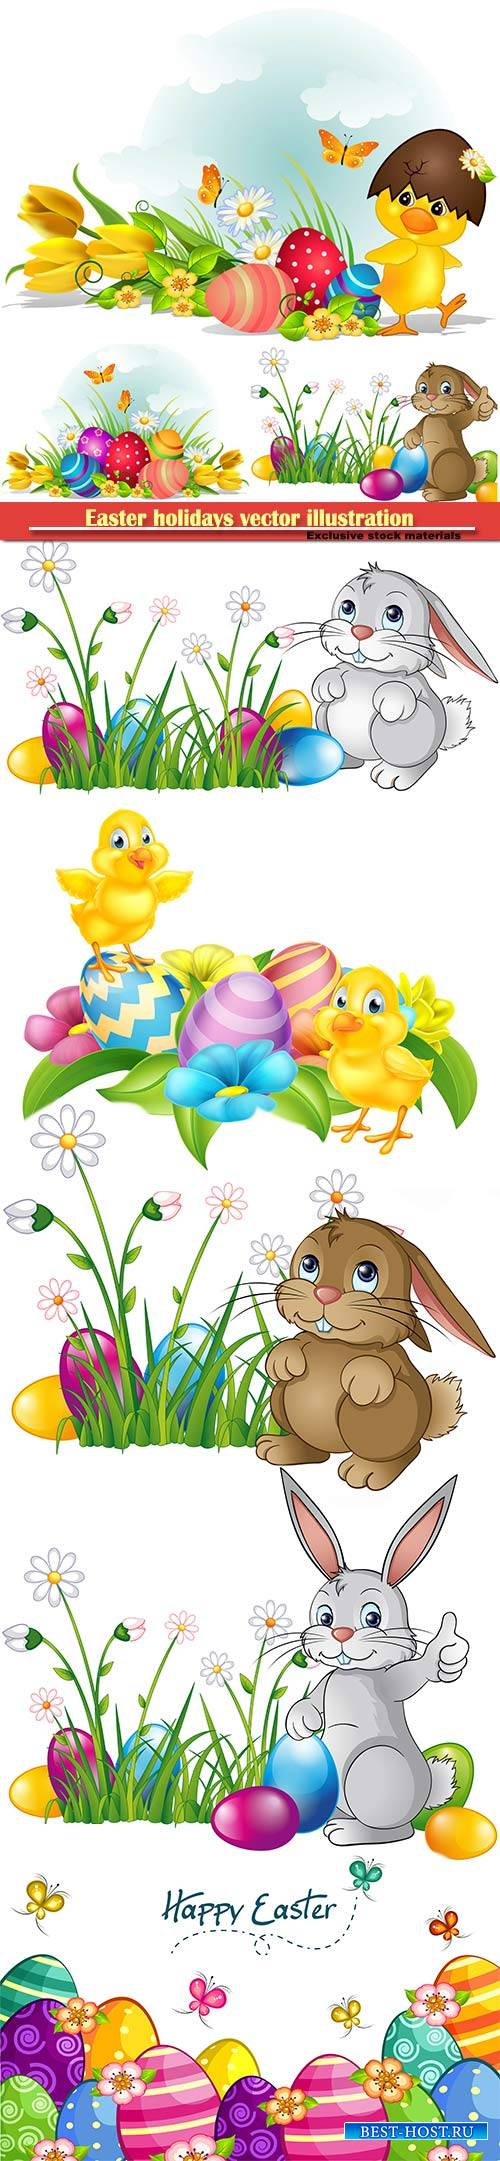 Easter holidays vector illustration # 5